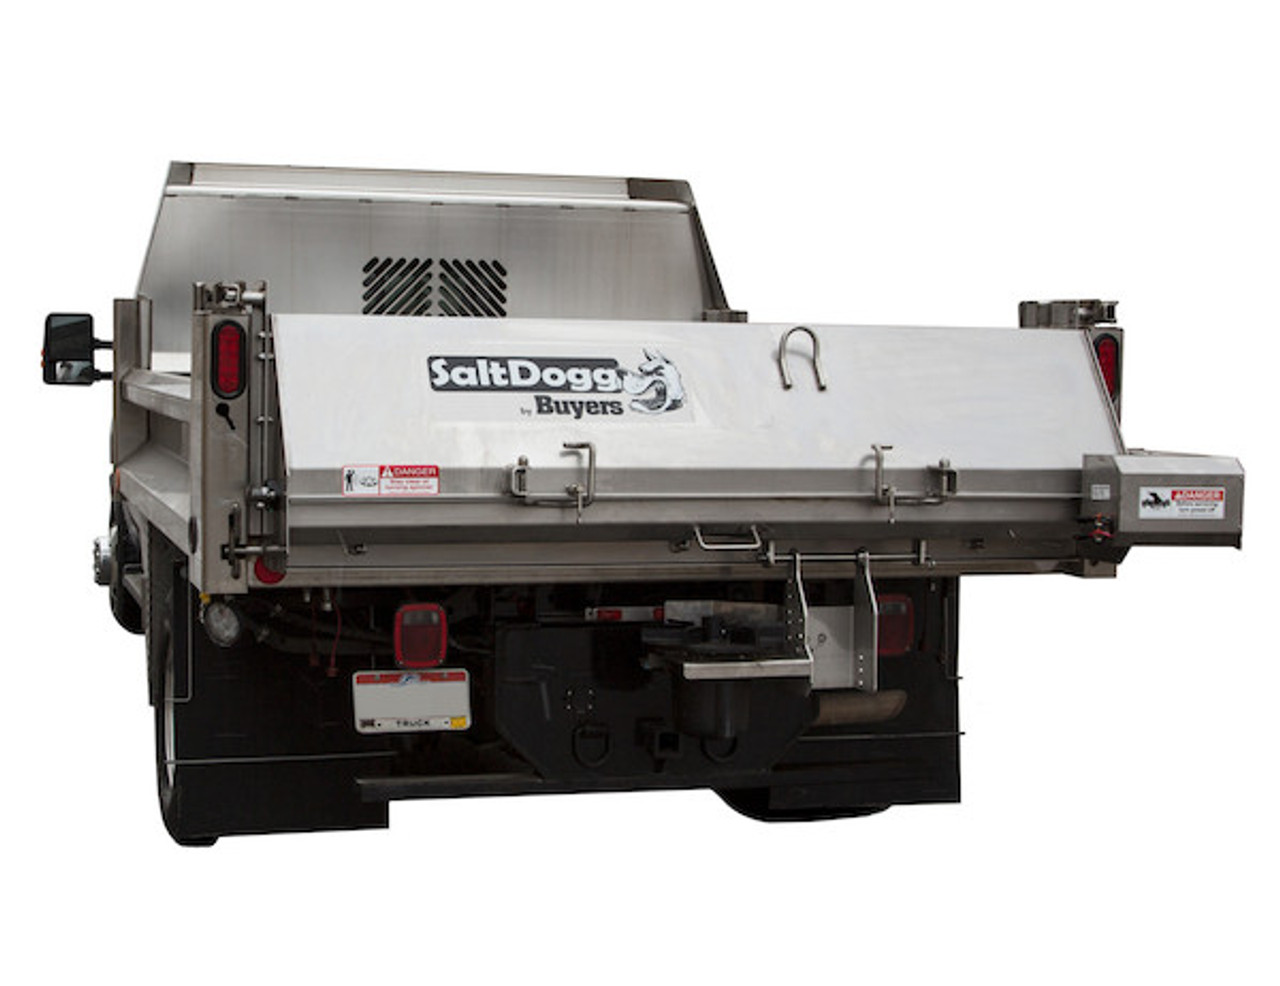 92420A BUYERS SALTDOGG HYDRAULIC CARBON STEEL UNDER TAILGATE SALT SPREADER